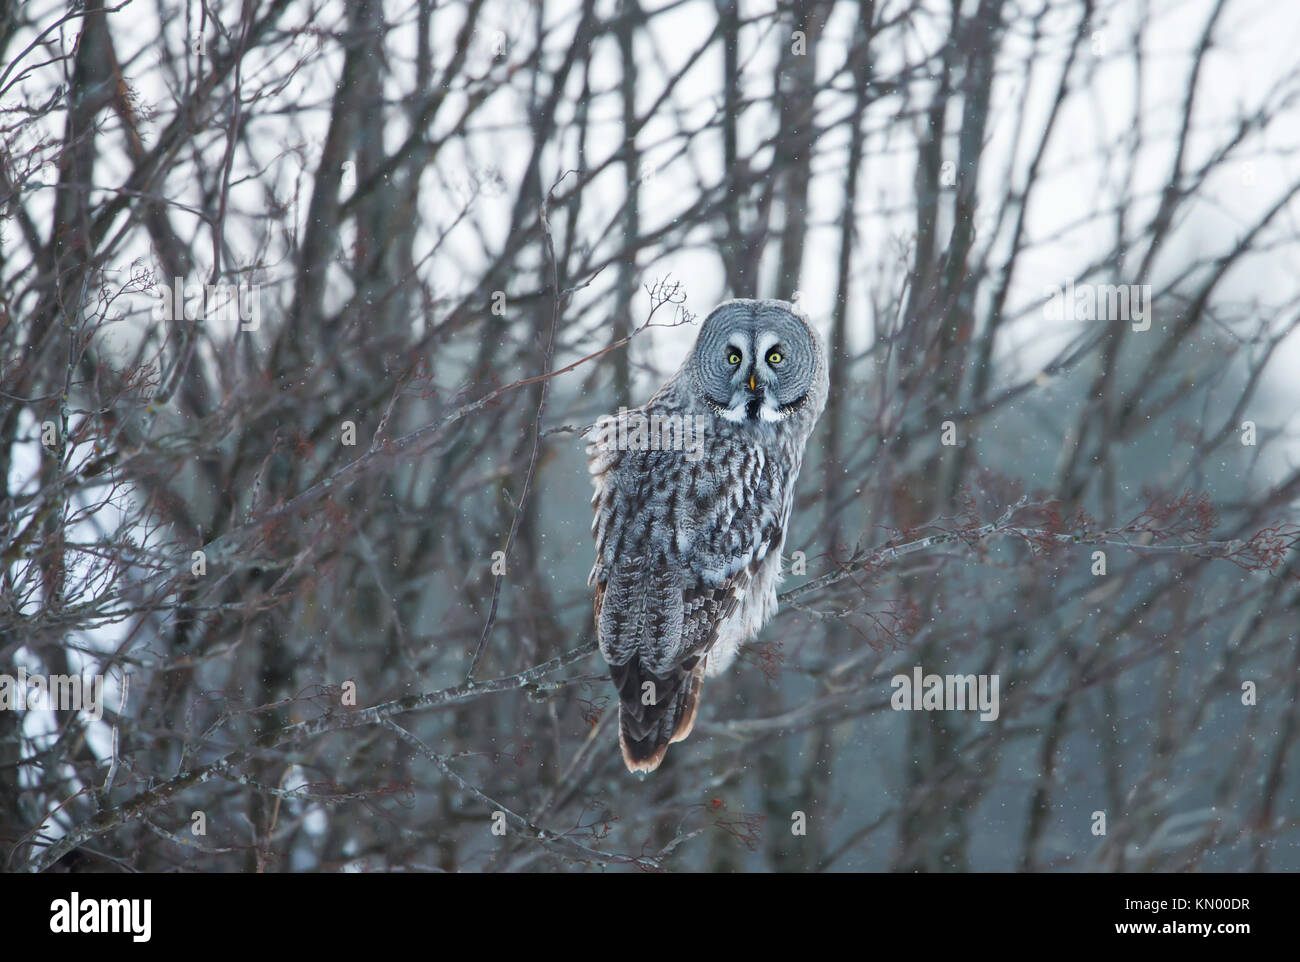 Great grey owl perching on a tree branch in winter, Finland - Stock Image